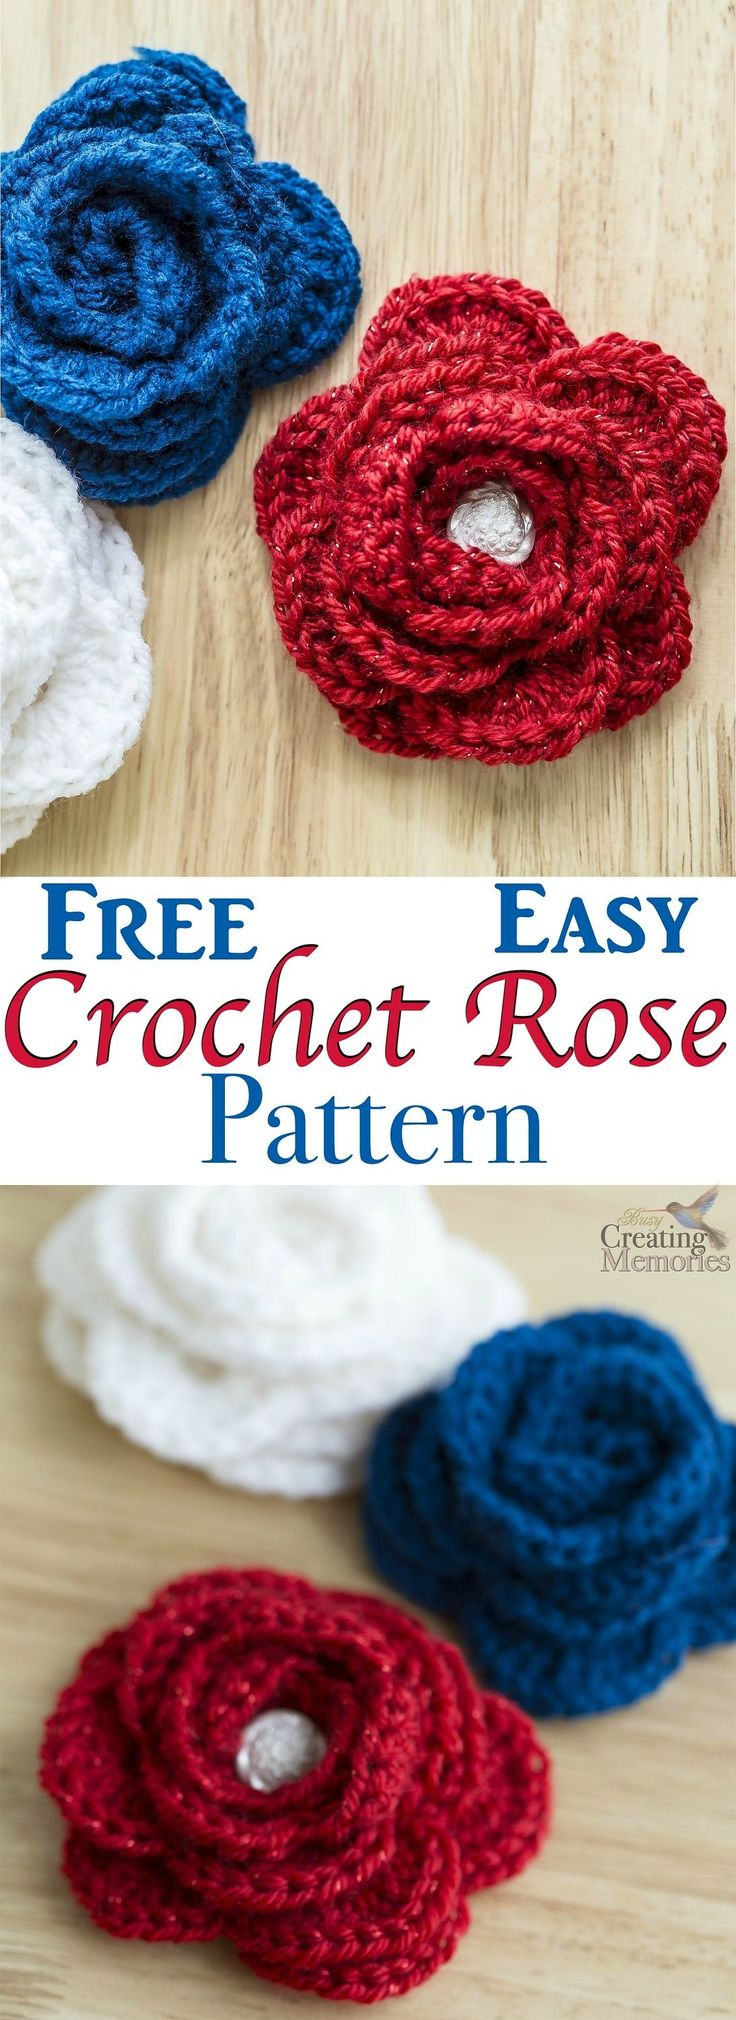 This free easy crochet rose pattern is the perfect project for beginner crochet with beautiful results. They are the perfect embellishment for a crochet hat or crochet headband, Brooch bag pin or home decor. Included is a left-handed crochet video tutorial #WhatInconvenience AD